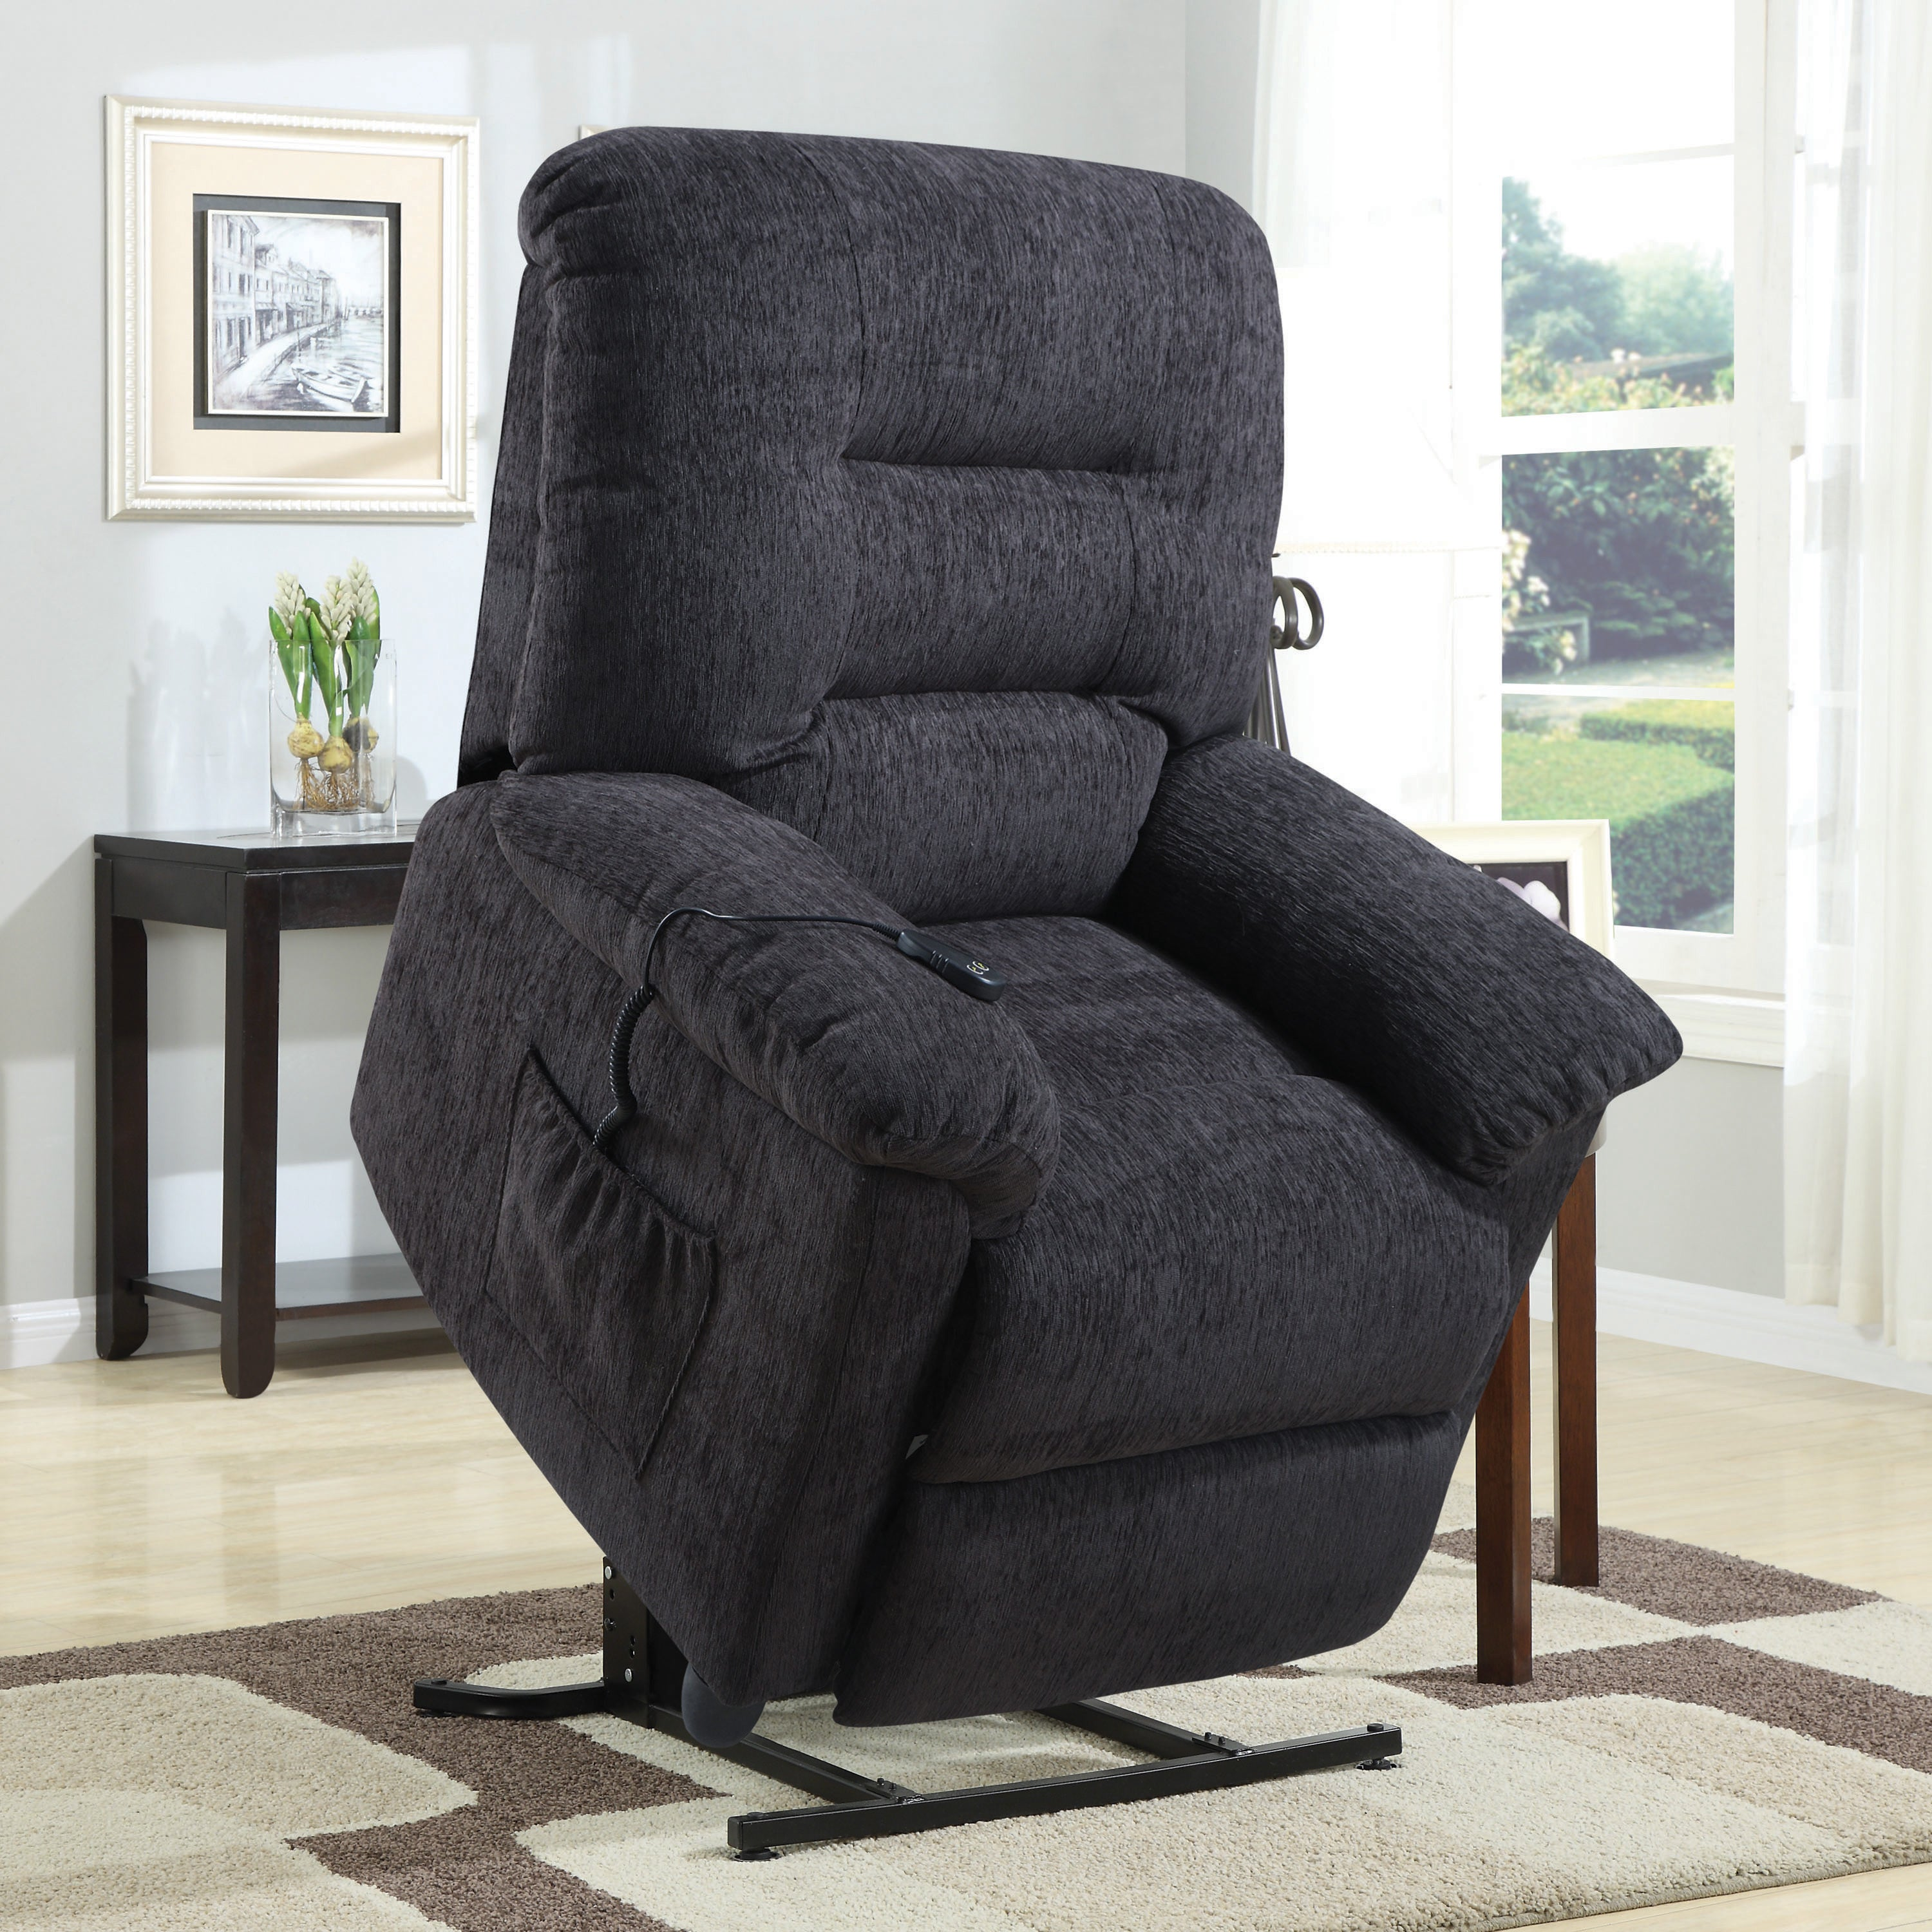 related recliners boy s leather chairs reviews for recliner chair rocker power lift post lazy sale